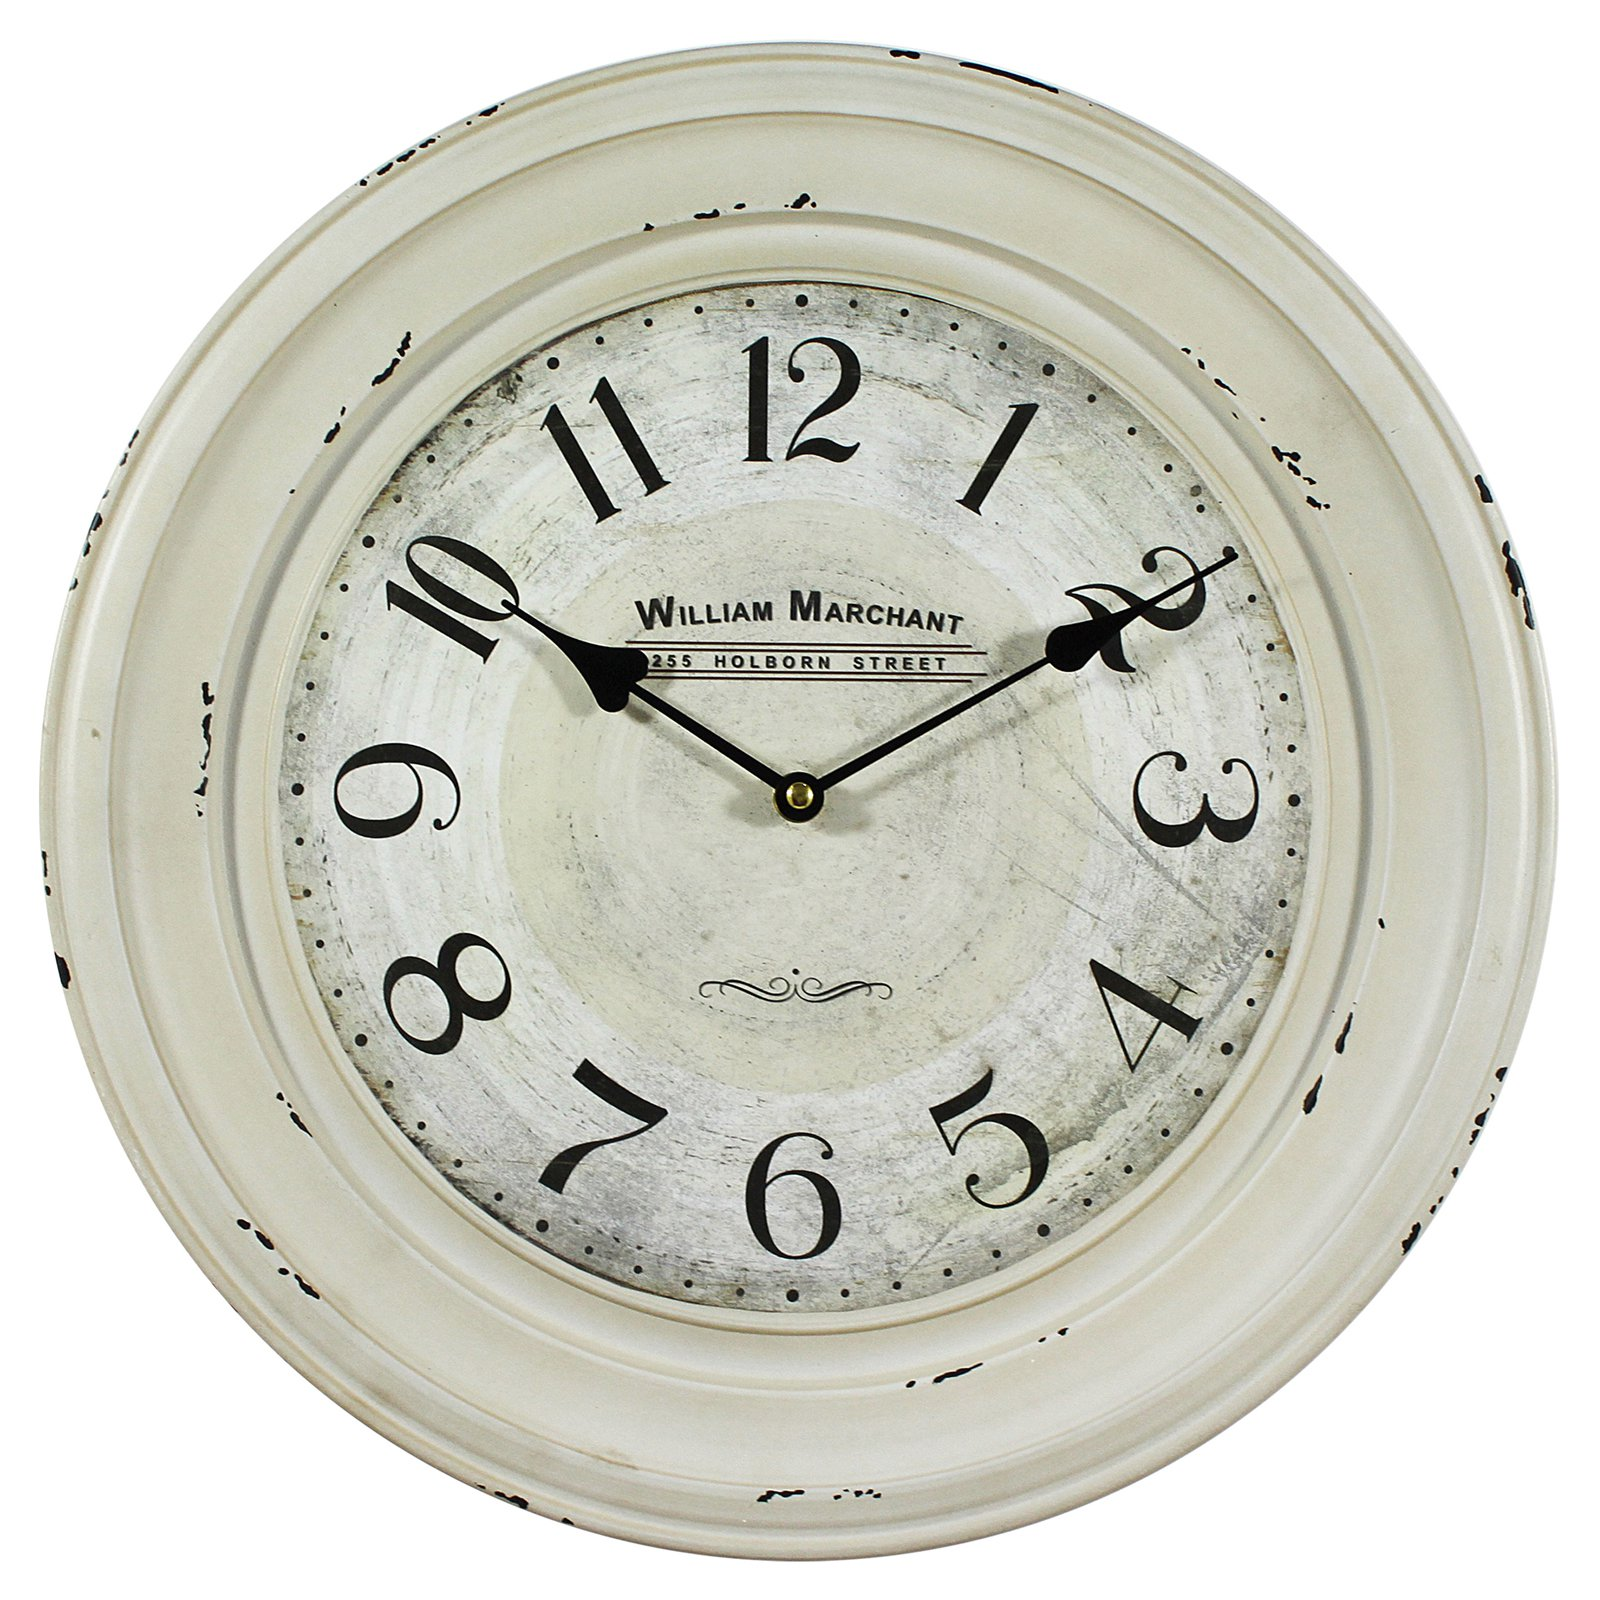 William Marchant 16 in. Wall Clock - Ivory